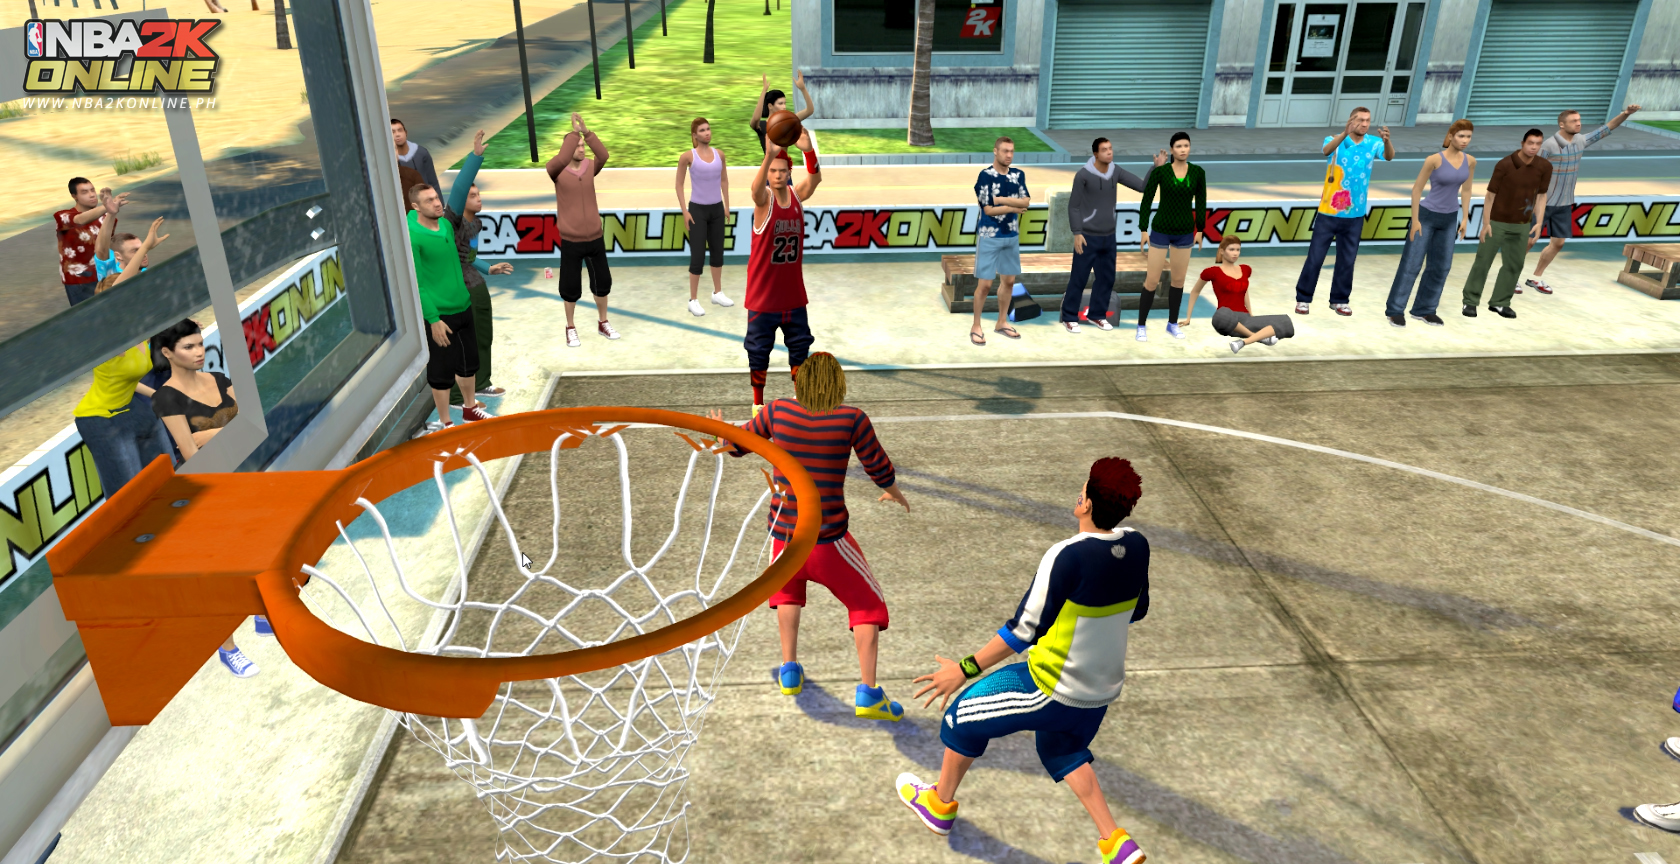 NBA-2K-Online-photo.jpg